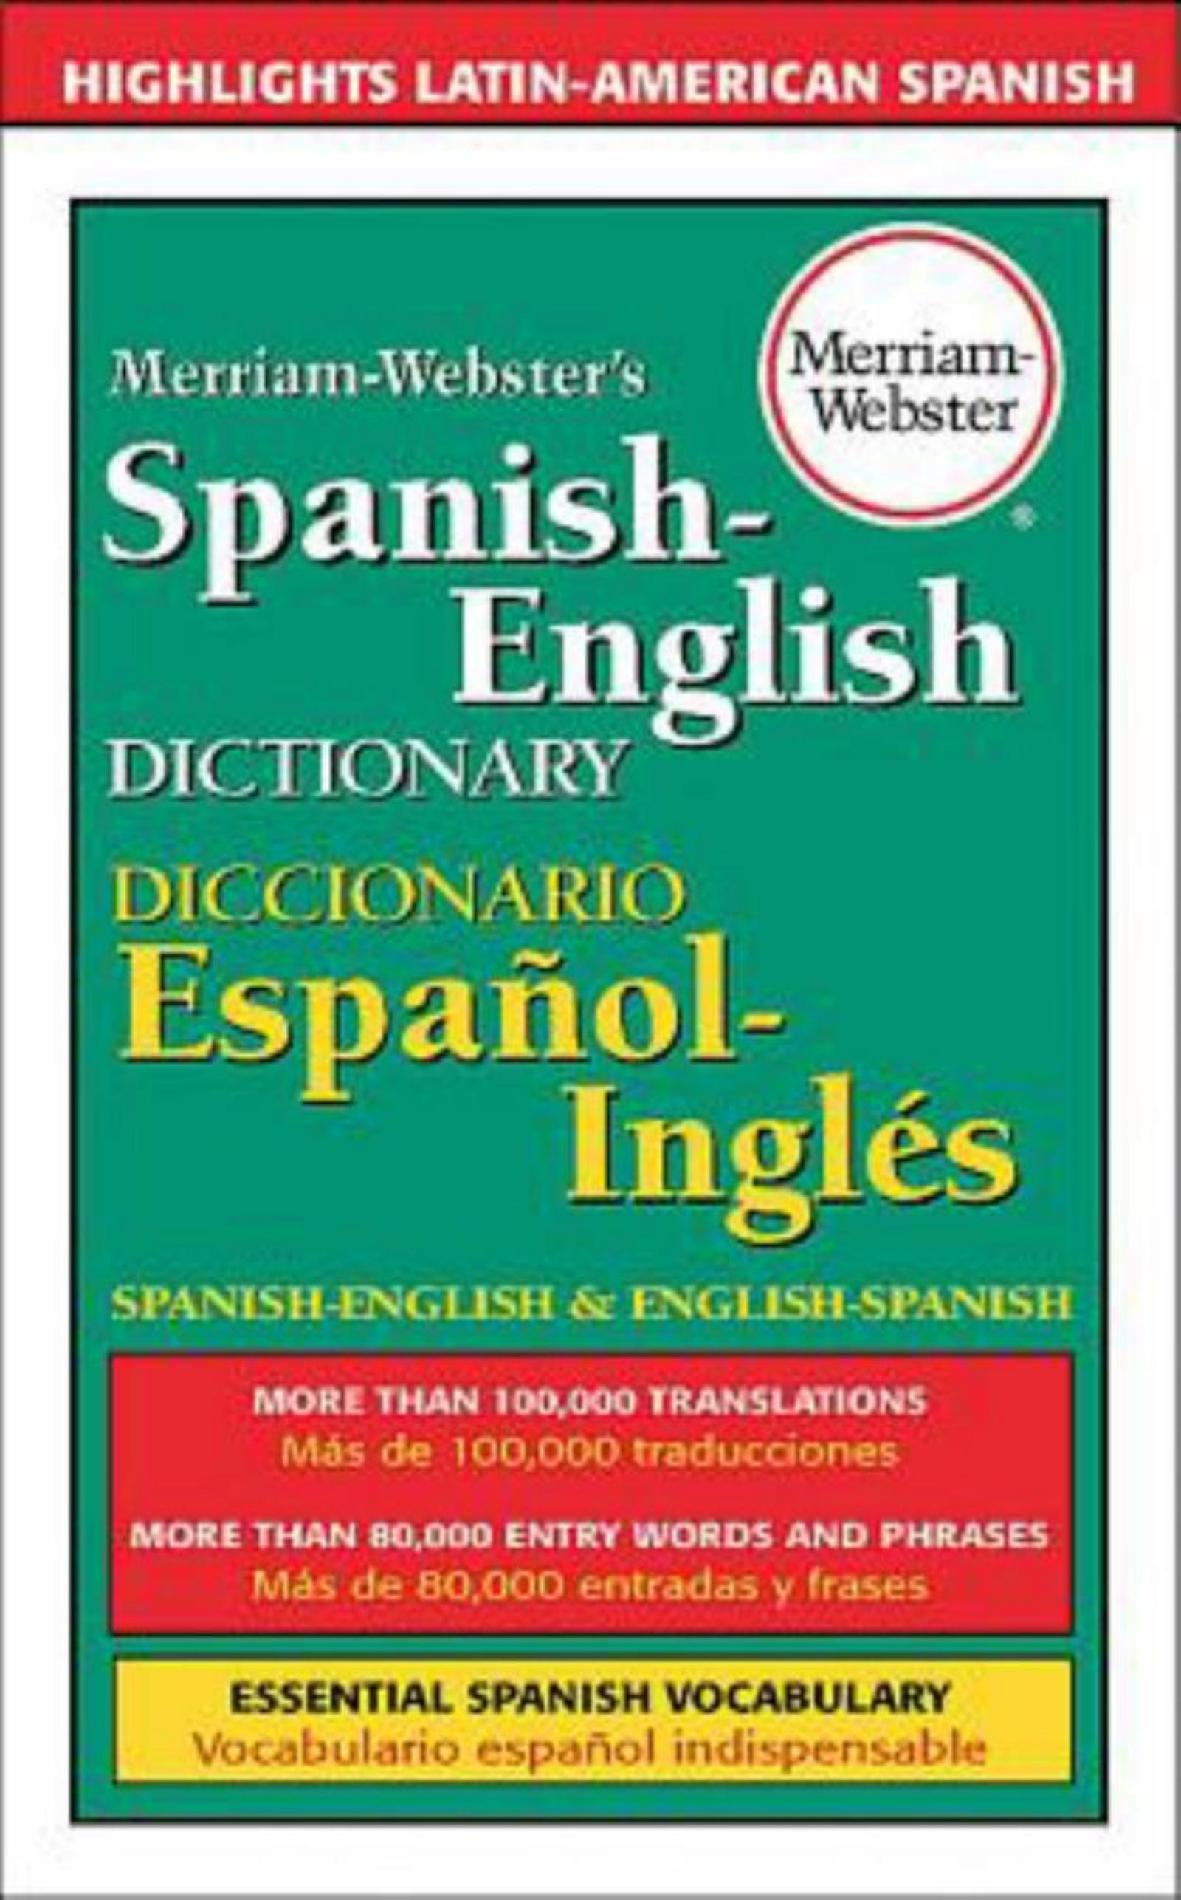 Merriam- Webster's Spanish-English Dictionary